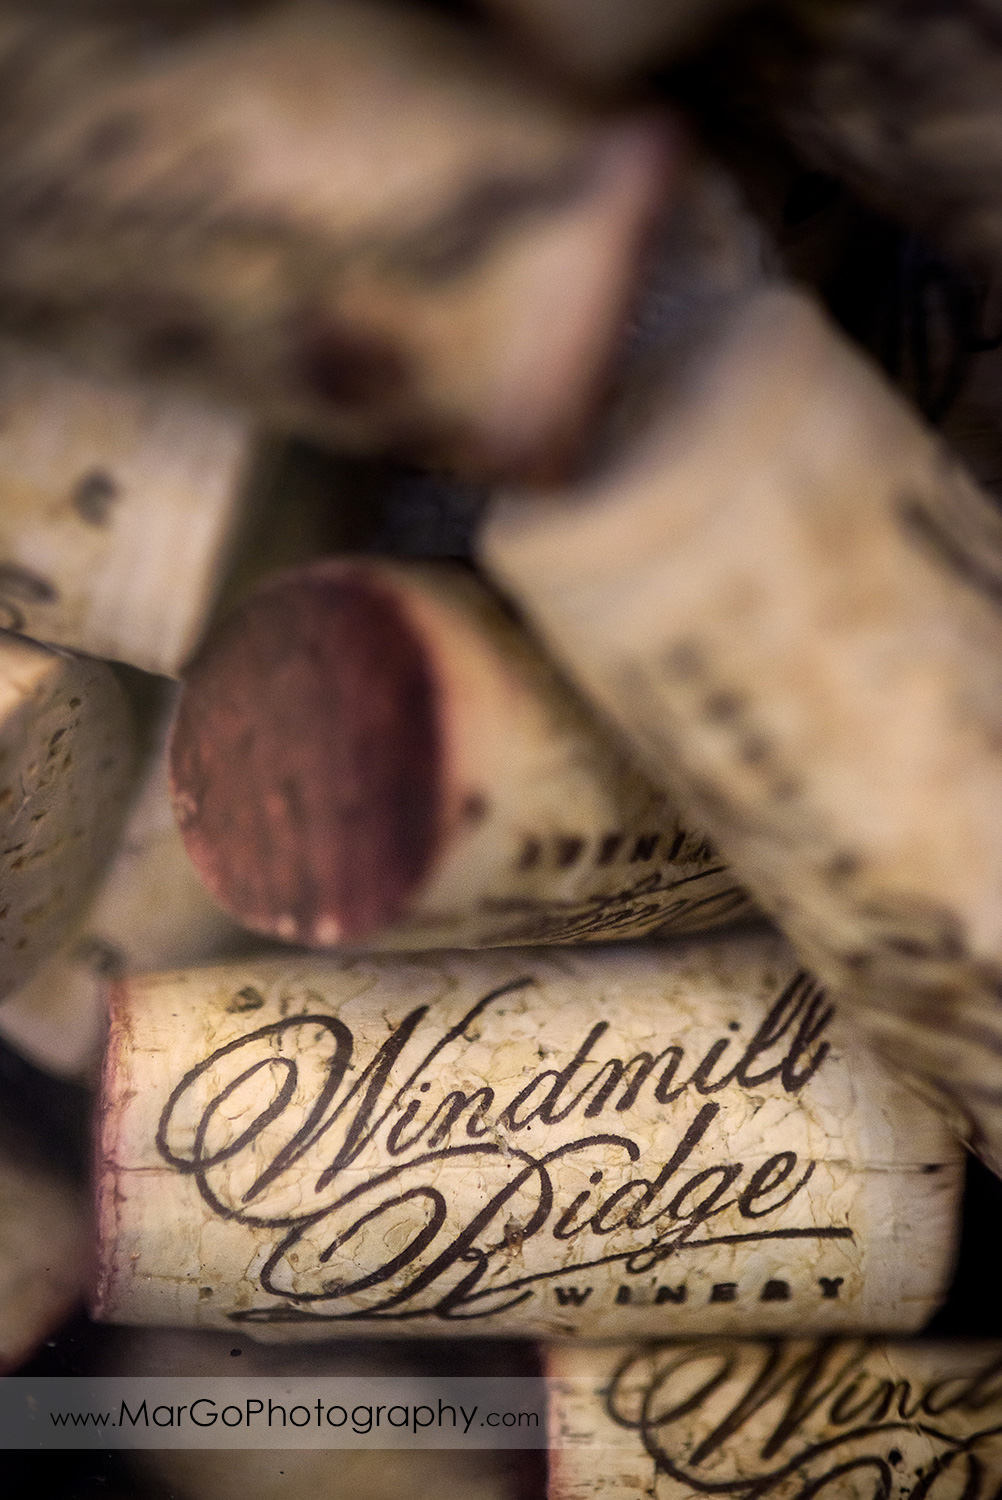 Windmill Ridge Winery wine corks